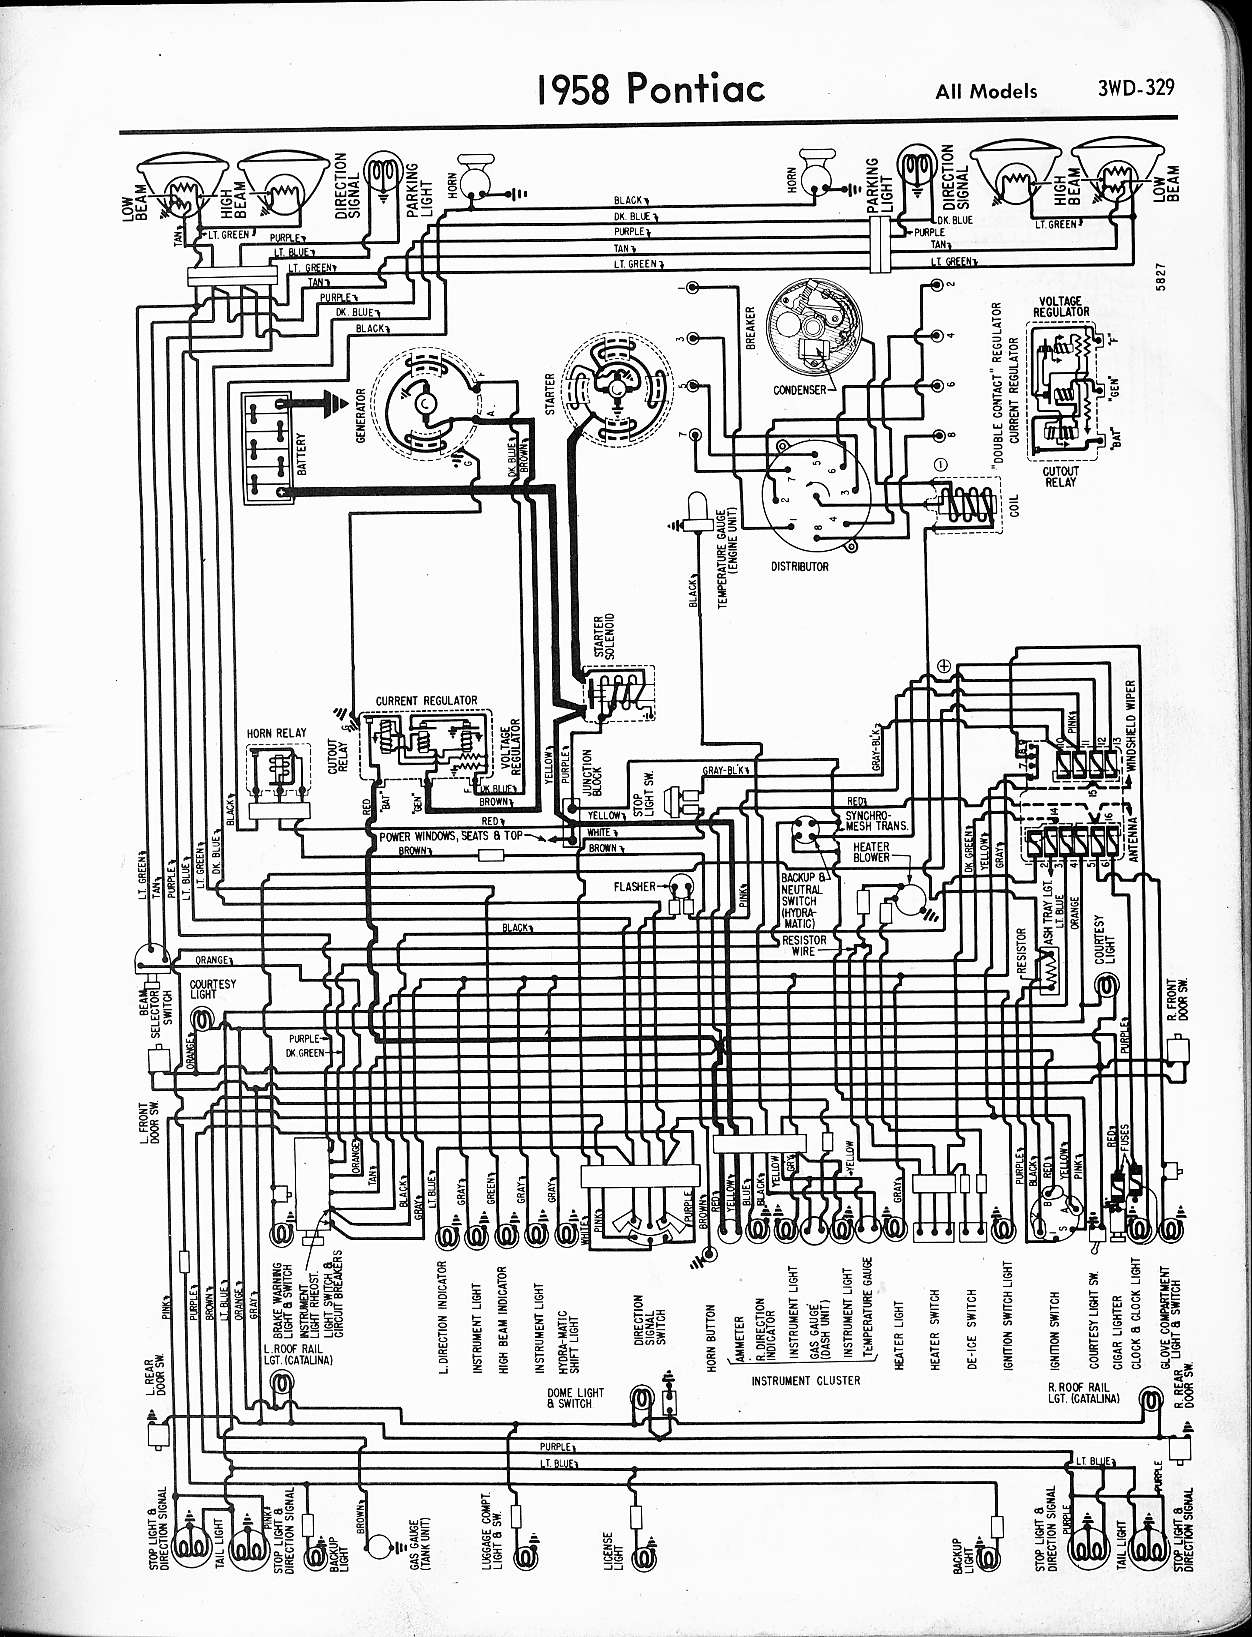 MWire5765 329 wallace racing wiring diagrams 1965 pontiac grand prix wiring diagram at crackthecode.co